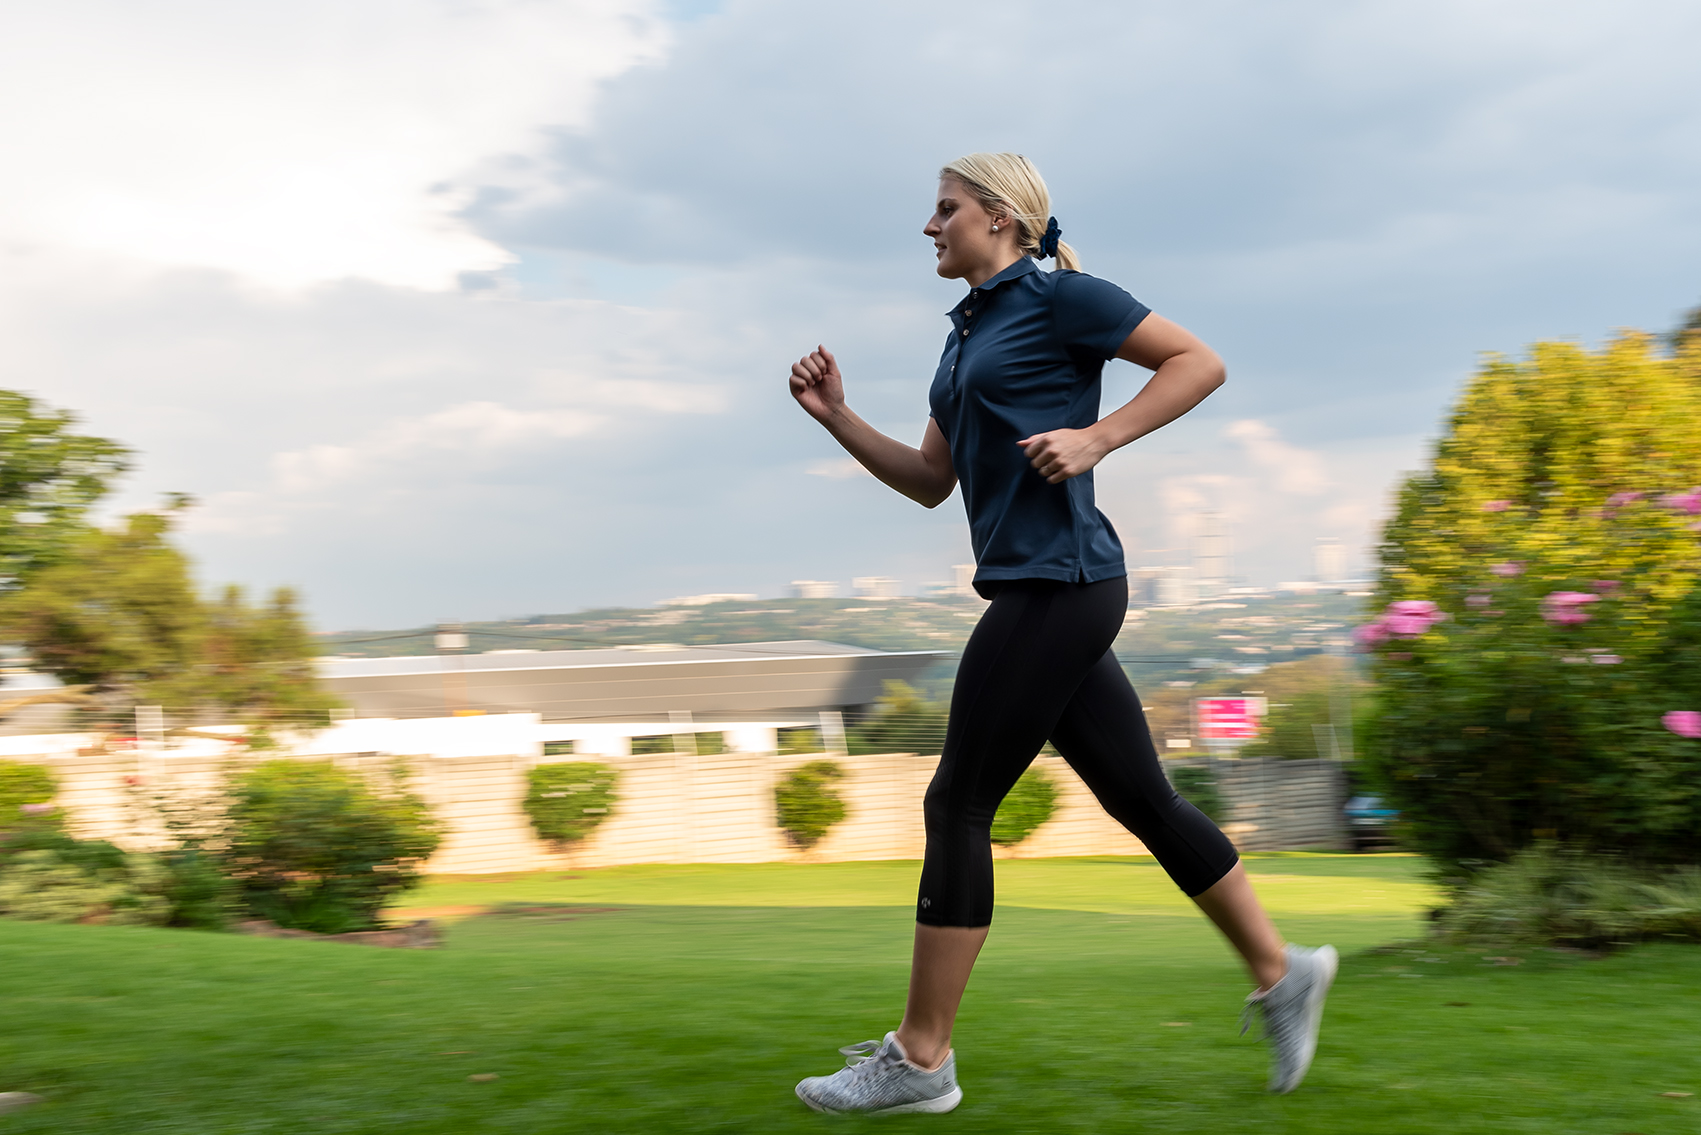 Improve your immune system through exercise like running during the pandemic